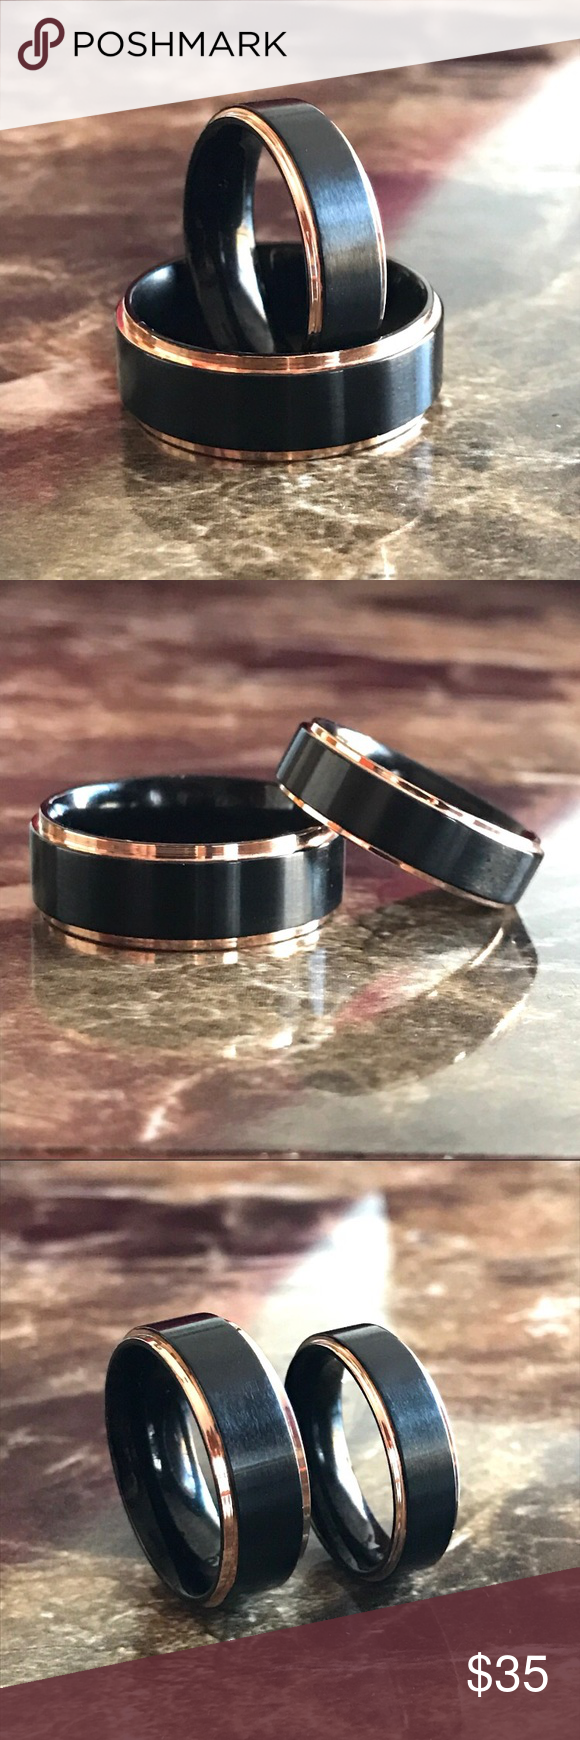 His & Hers Black Titanium Rose Gold Couples Rings Brand new No trades I do bundle  Fit: Comfort Metal: Titanium  Finish: Rose Gold Plated Band Width: Male 8MM Female 6MM Color: Black/Rose Gold  Men sizes: 7/8/9/9.5/11/11.5/12.5 Women sizes: 5/6/7/8/9/9.5/11 Ring box included  Please comment ring size for male and female before or after purchase thank you. Jewelry Rings